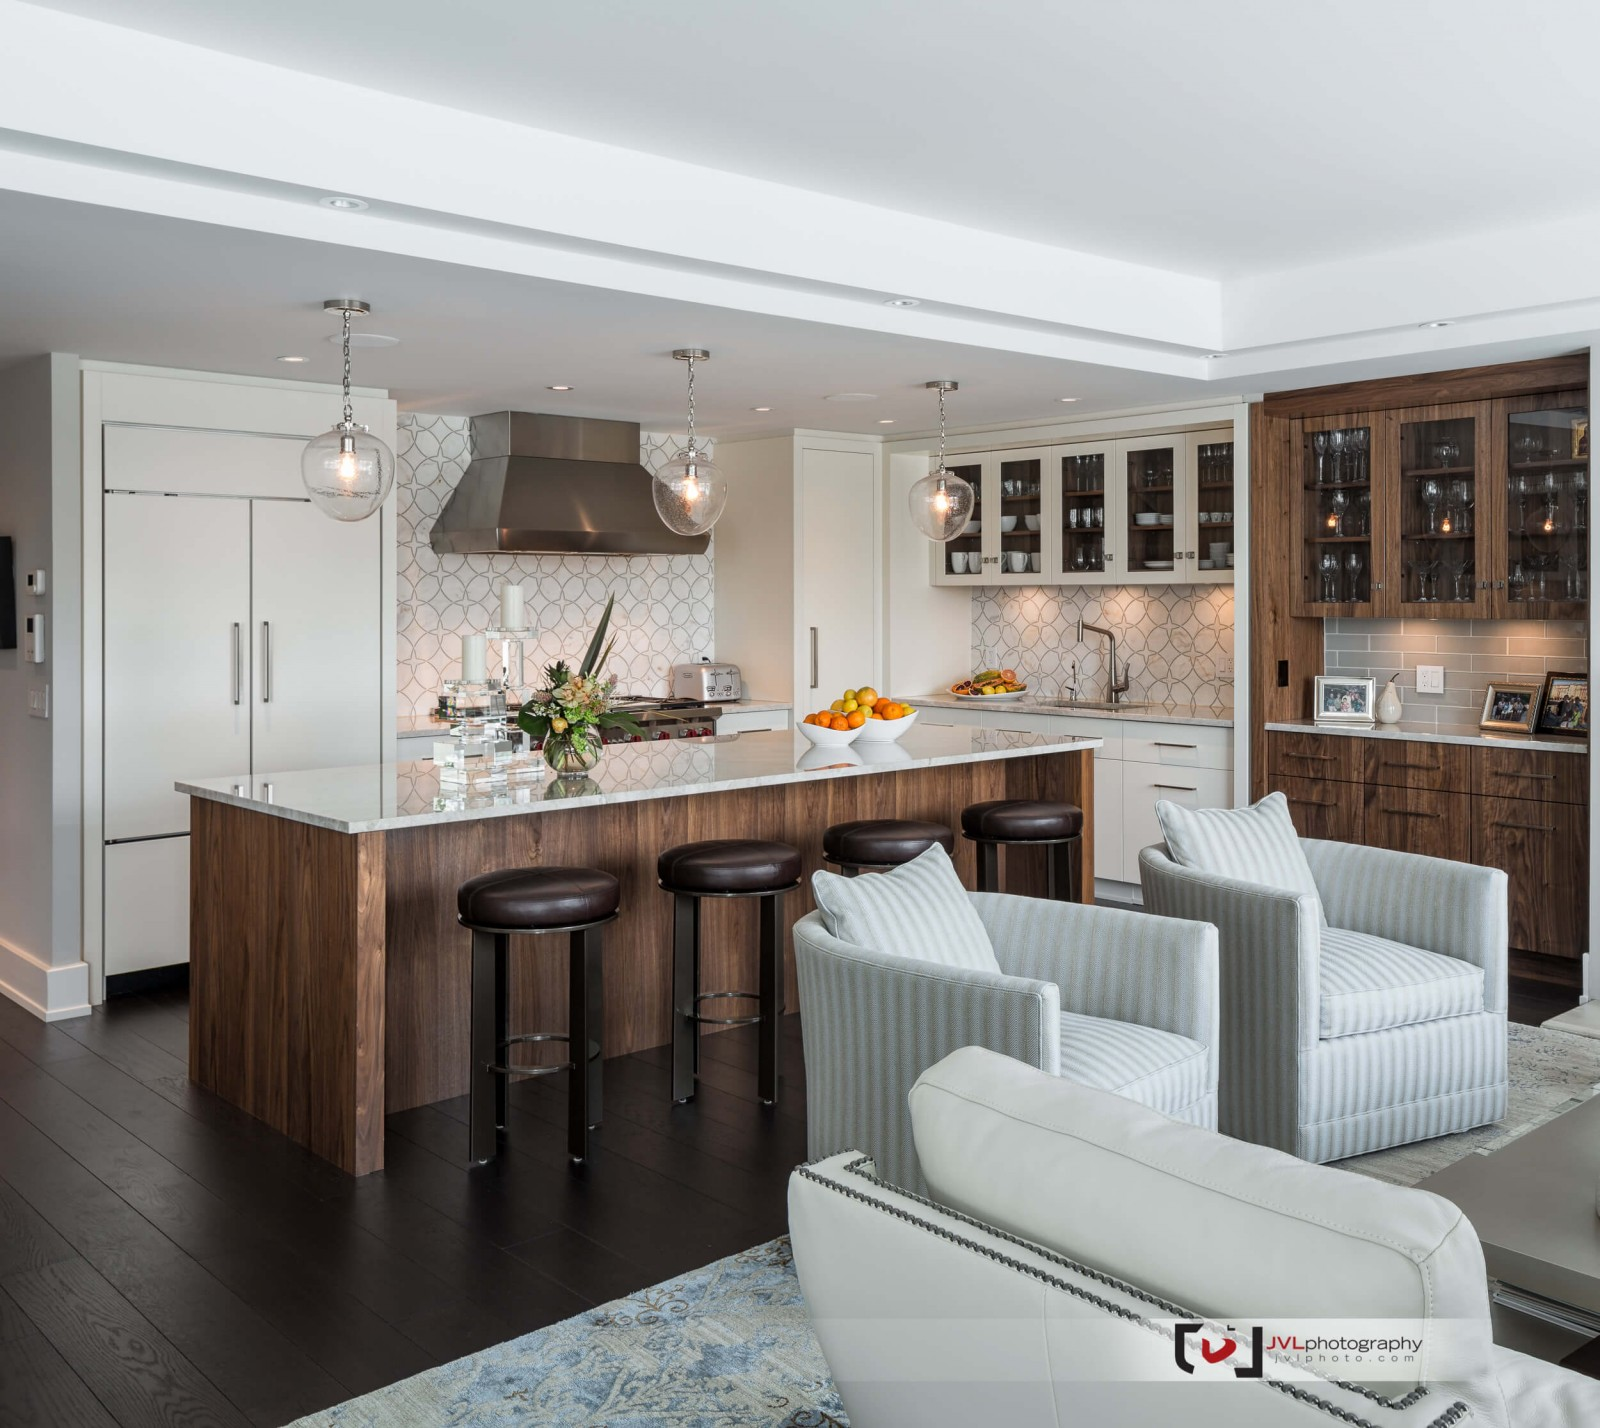 Kitchen Interior Design Awards